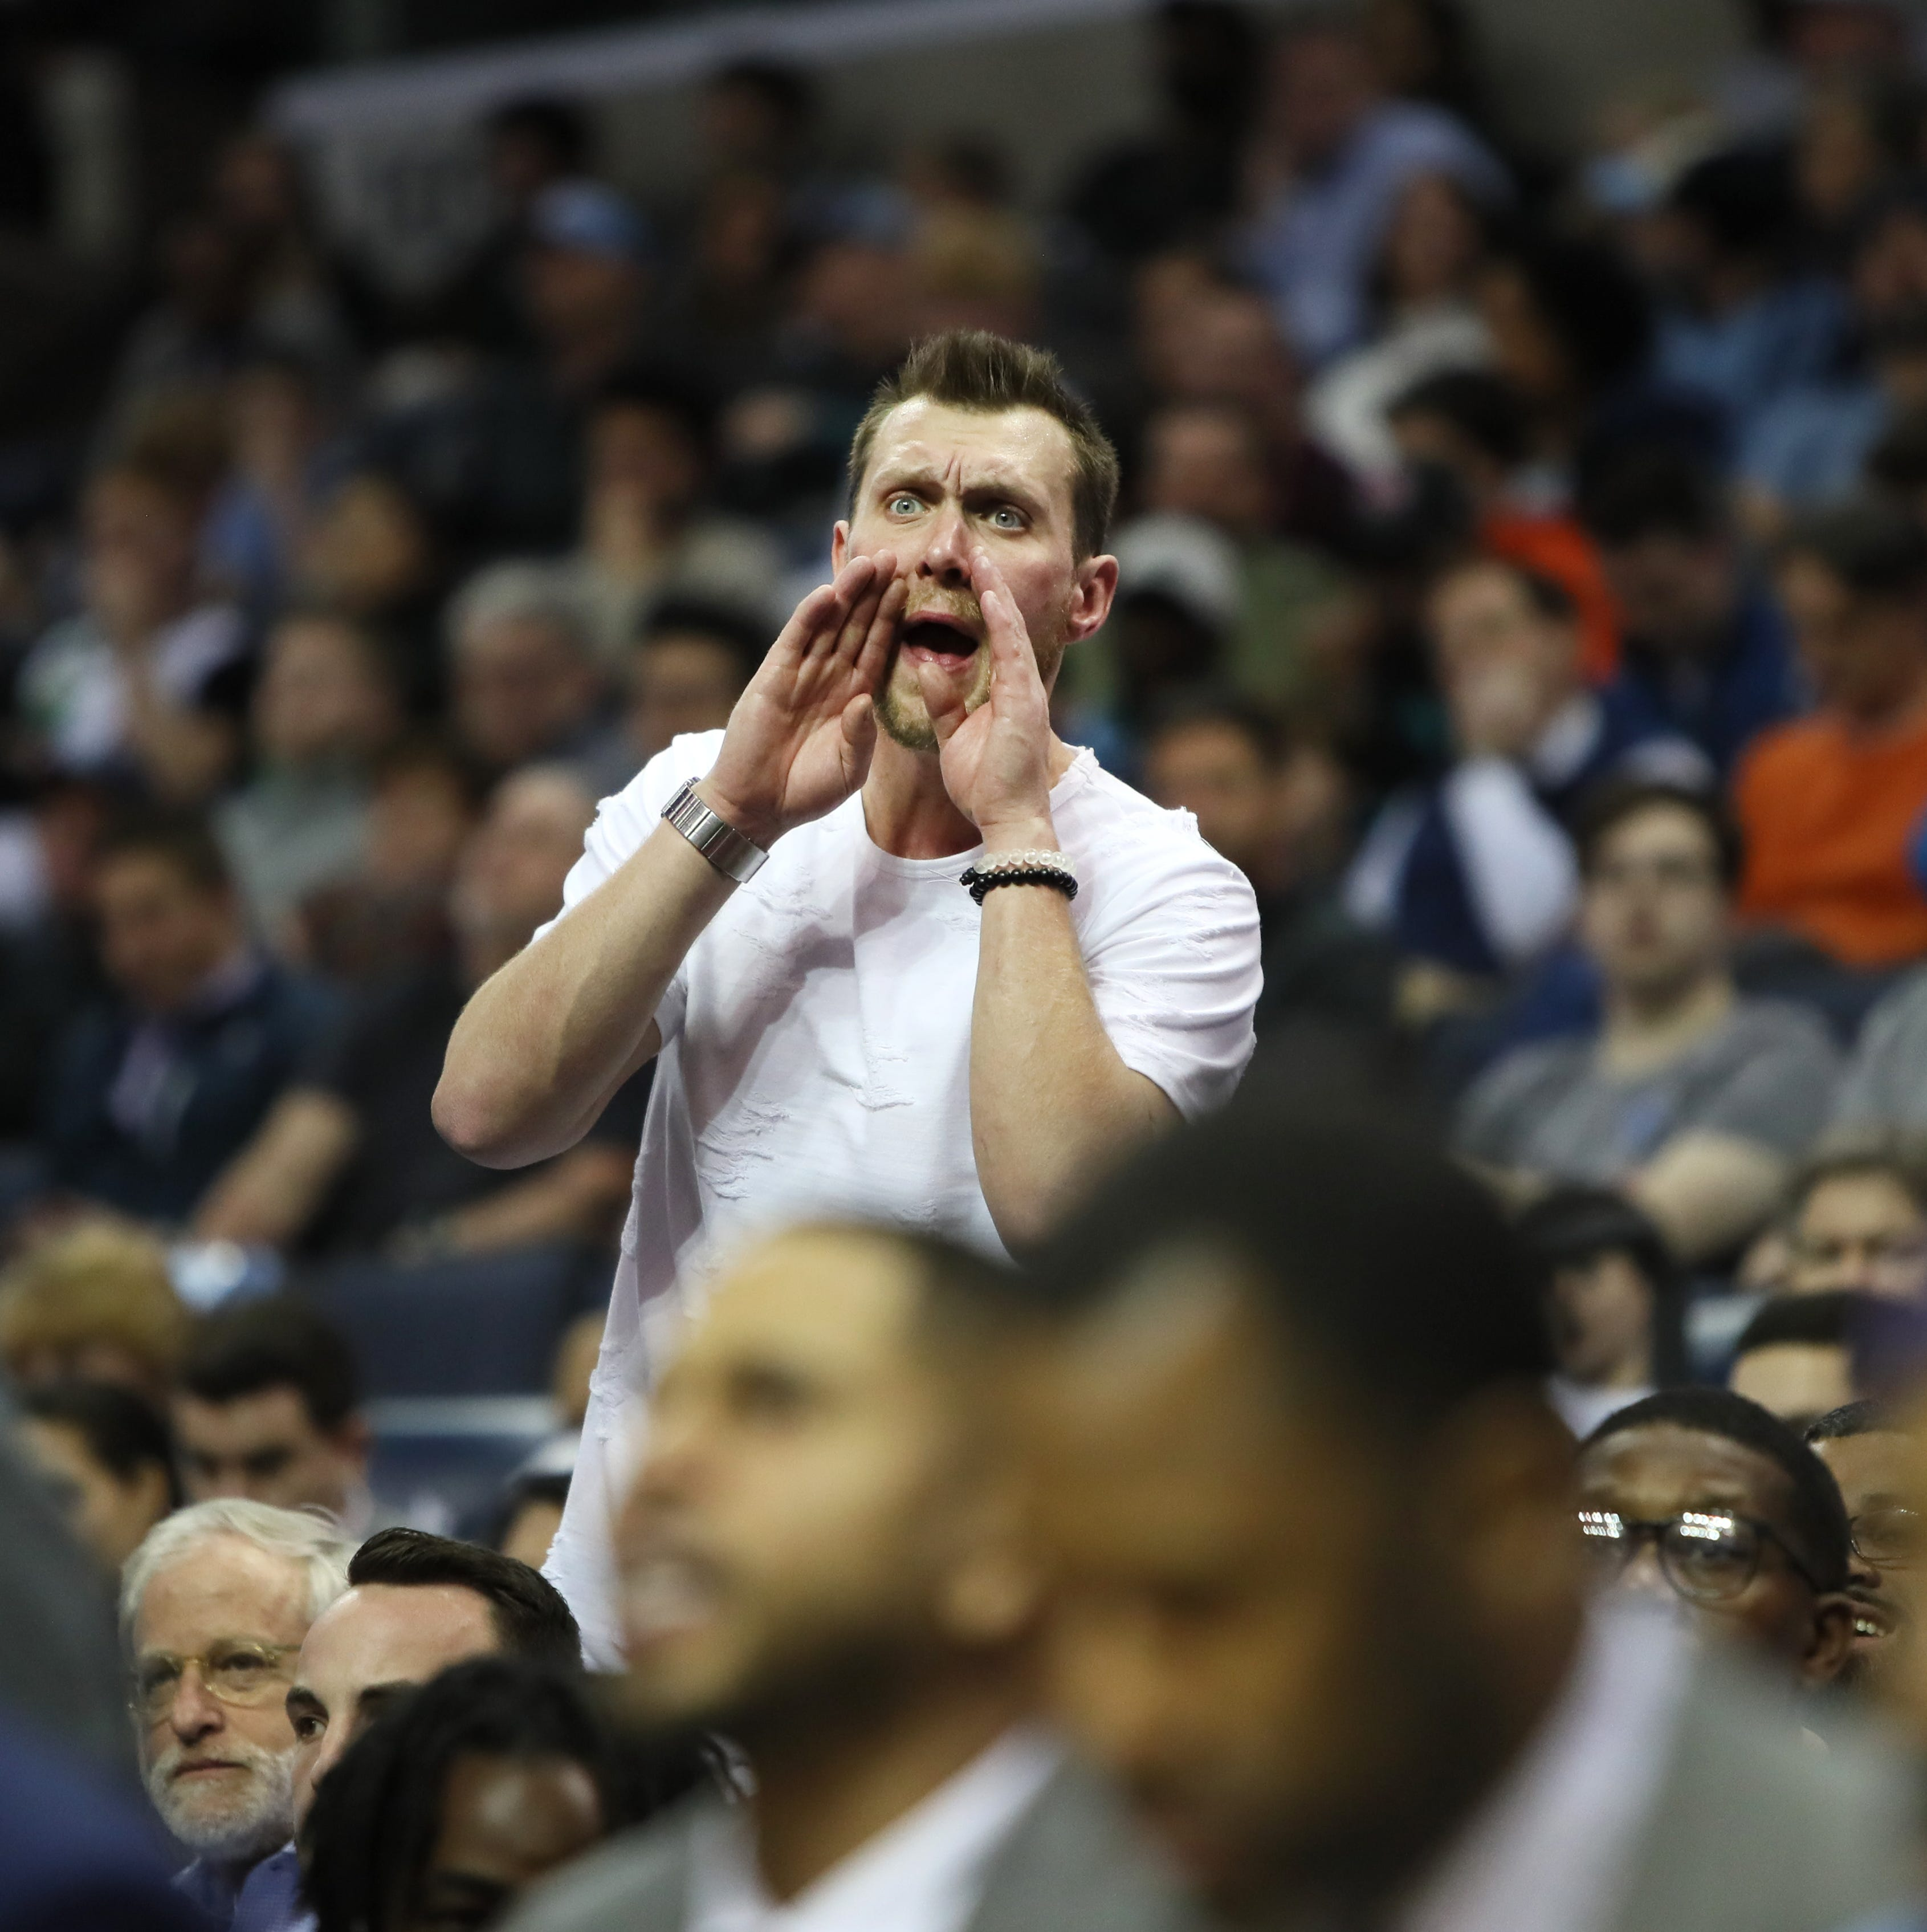 Why the Memphis Grizzlies are giving tickets to furloughed government employees Monday